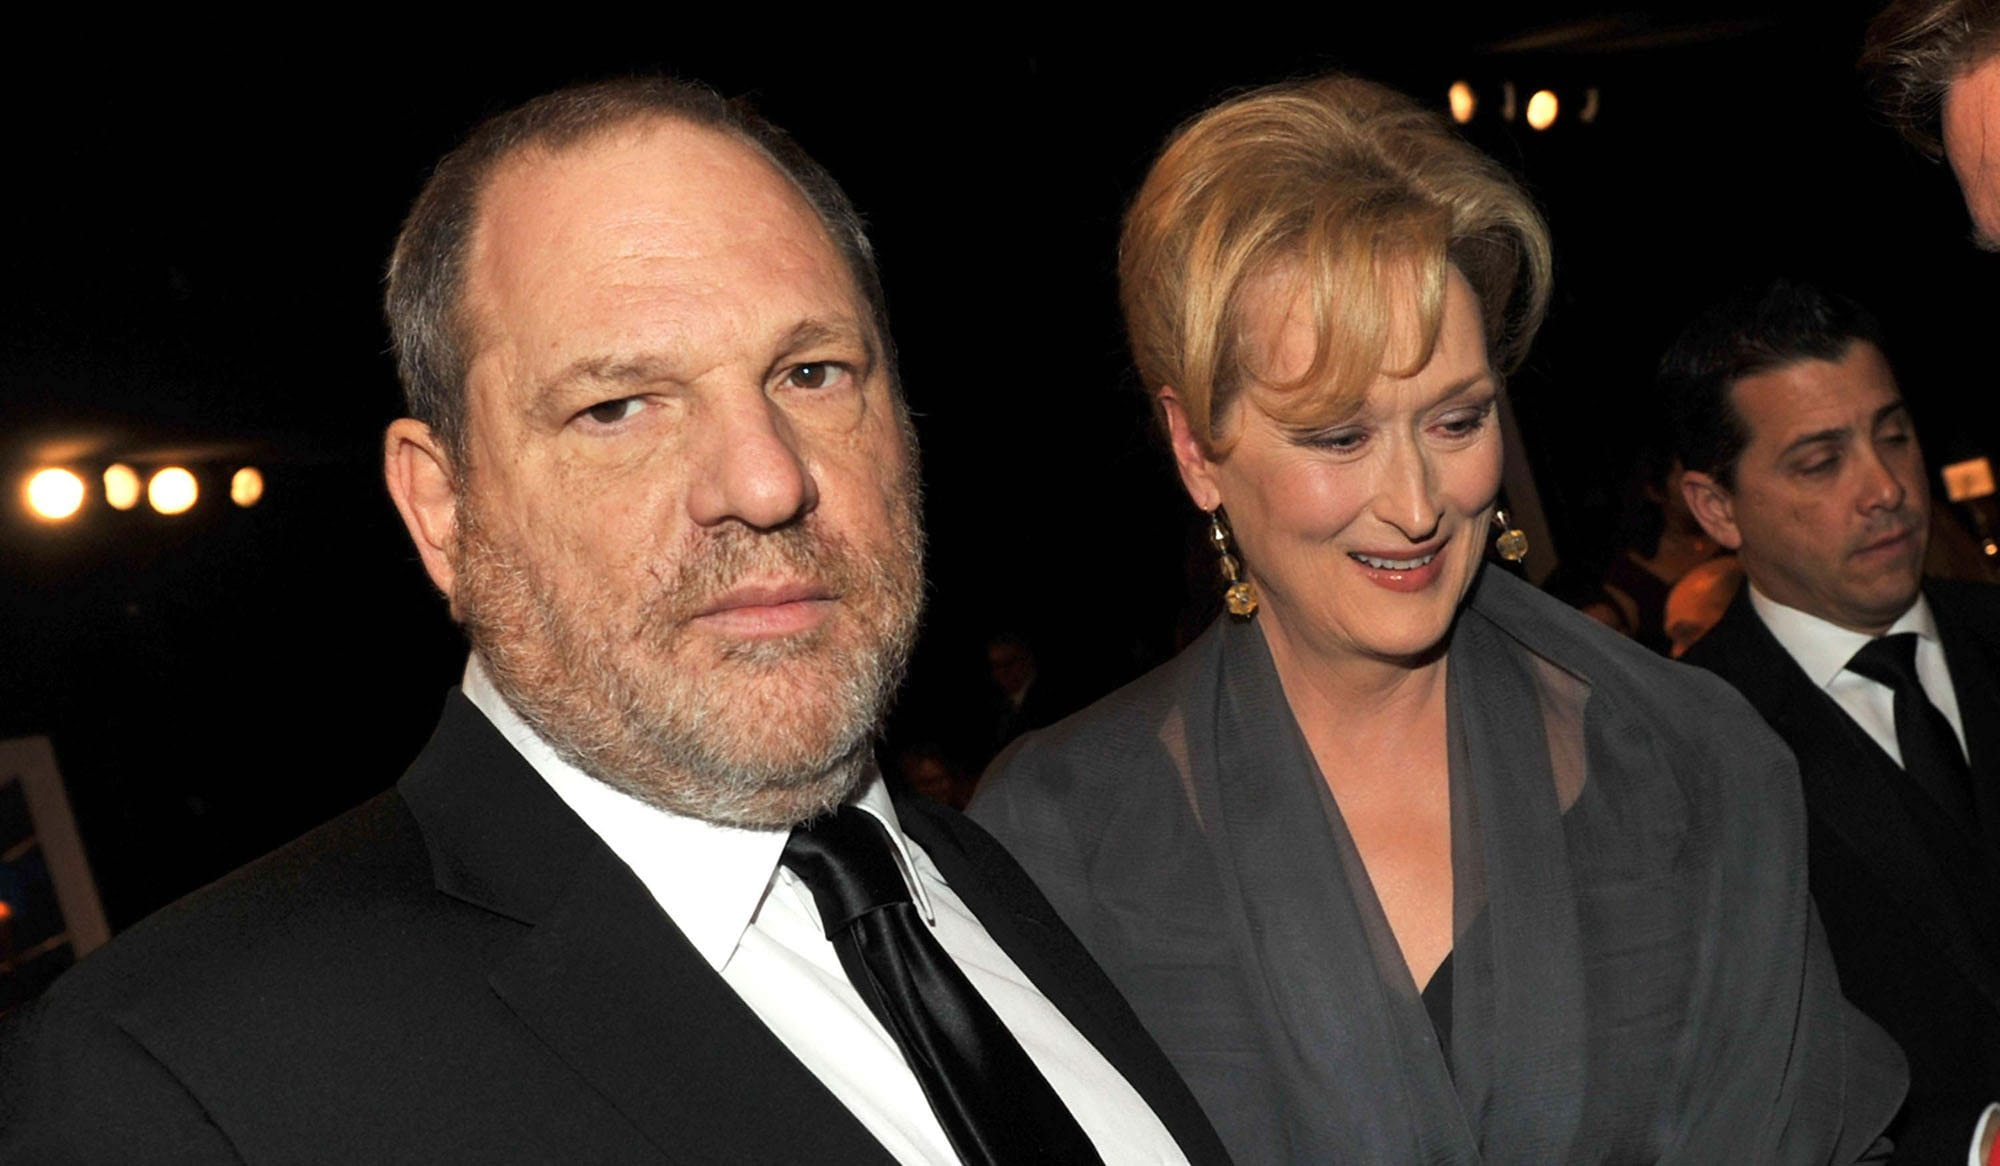 Thousands of women are continuing to use the #metoo hashtag to discuss their stories of abuse and sexual harassment in the wake of the Weinstein scandal.